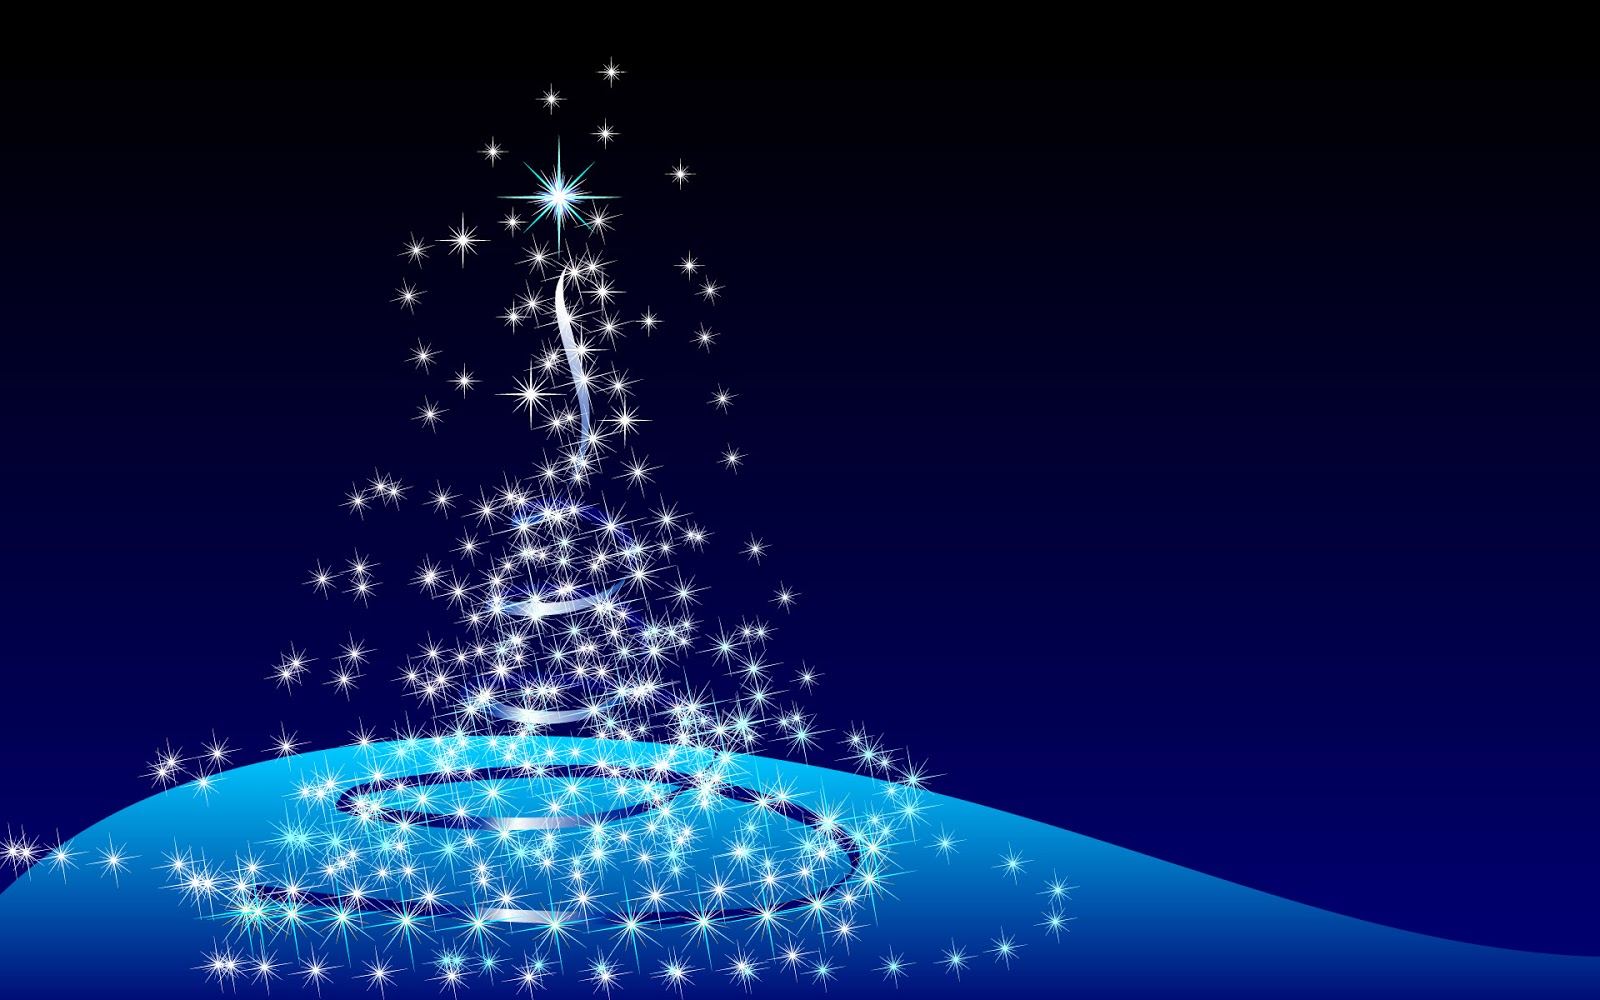 Lovely 3D Animation Christmas Tree In Blue Background